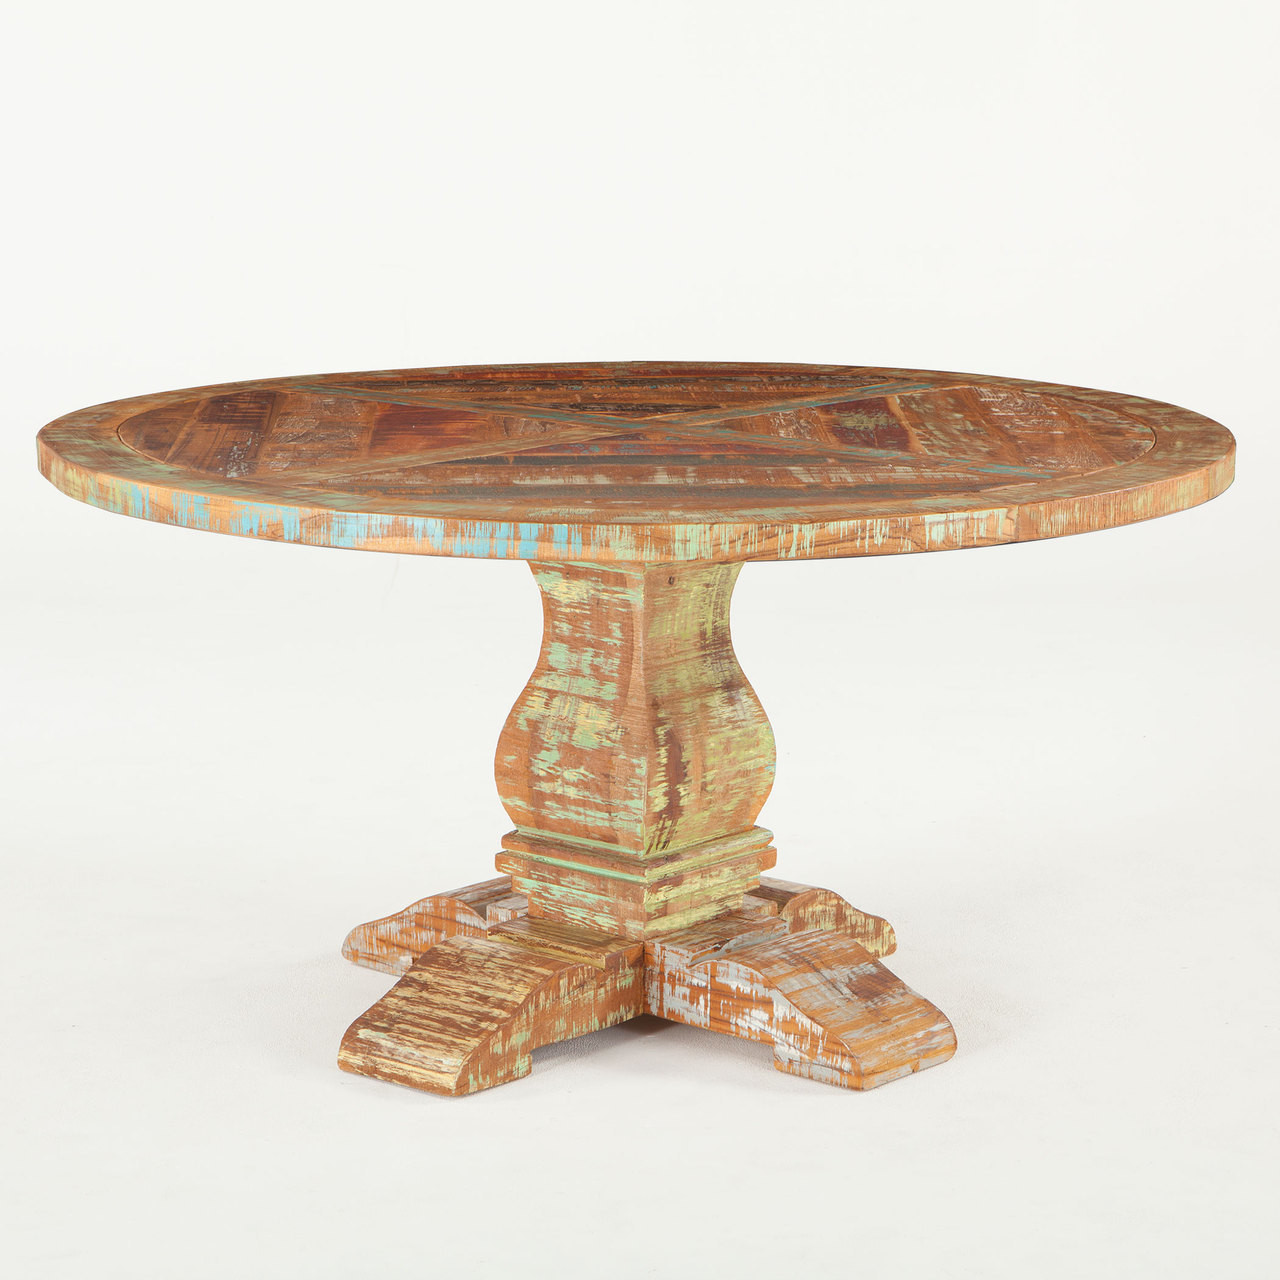 Shabby Chic Reclaimed Wood Round Dining Table 60 Zin Home